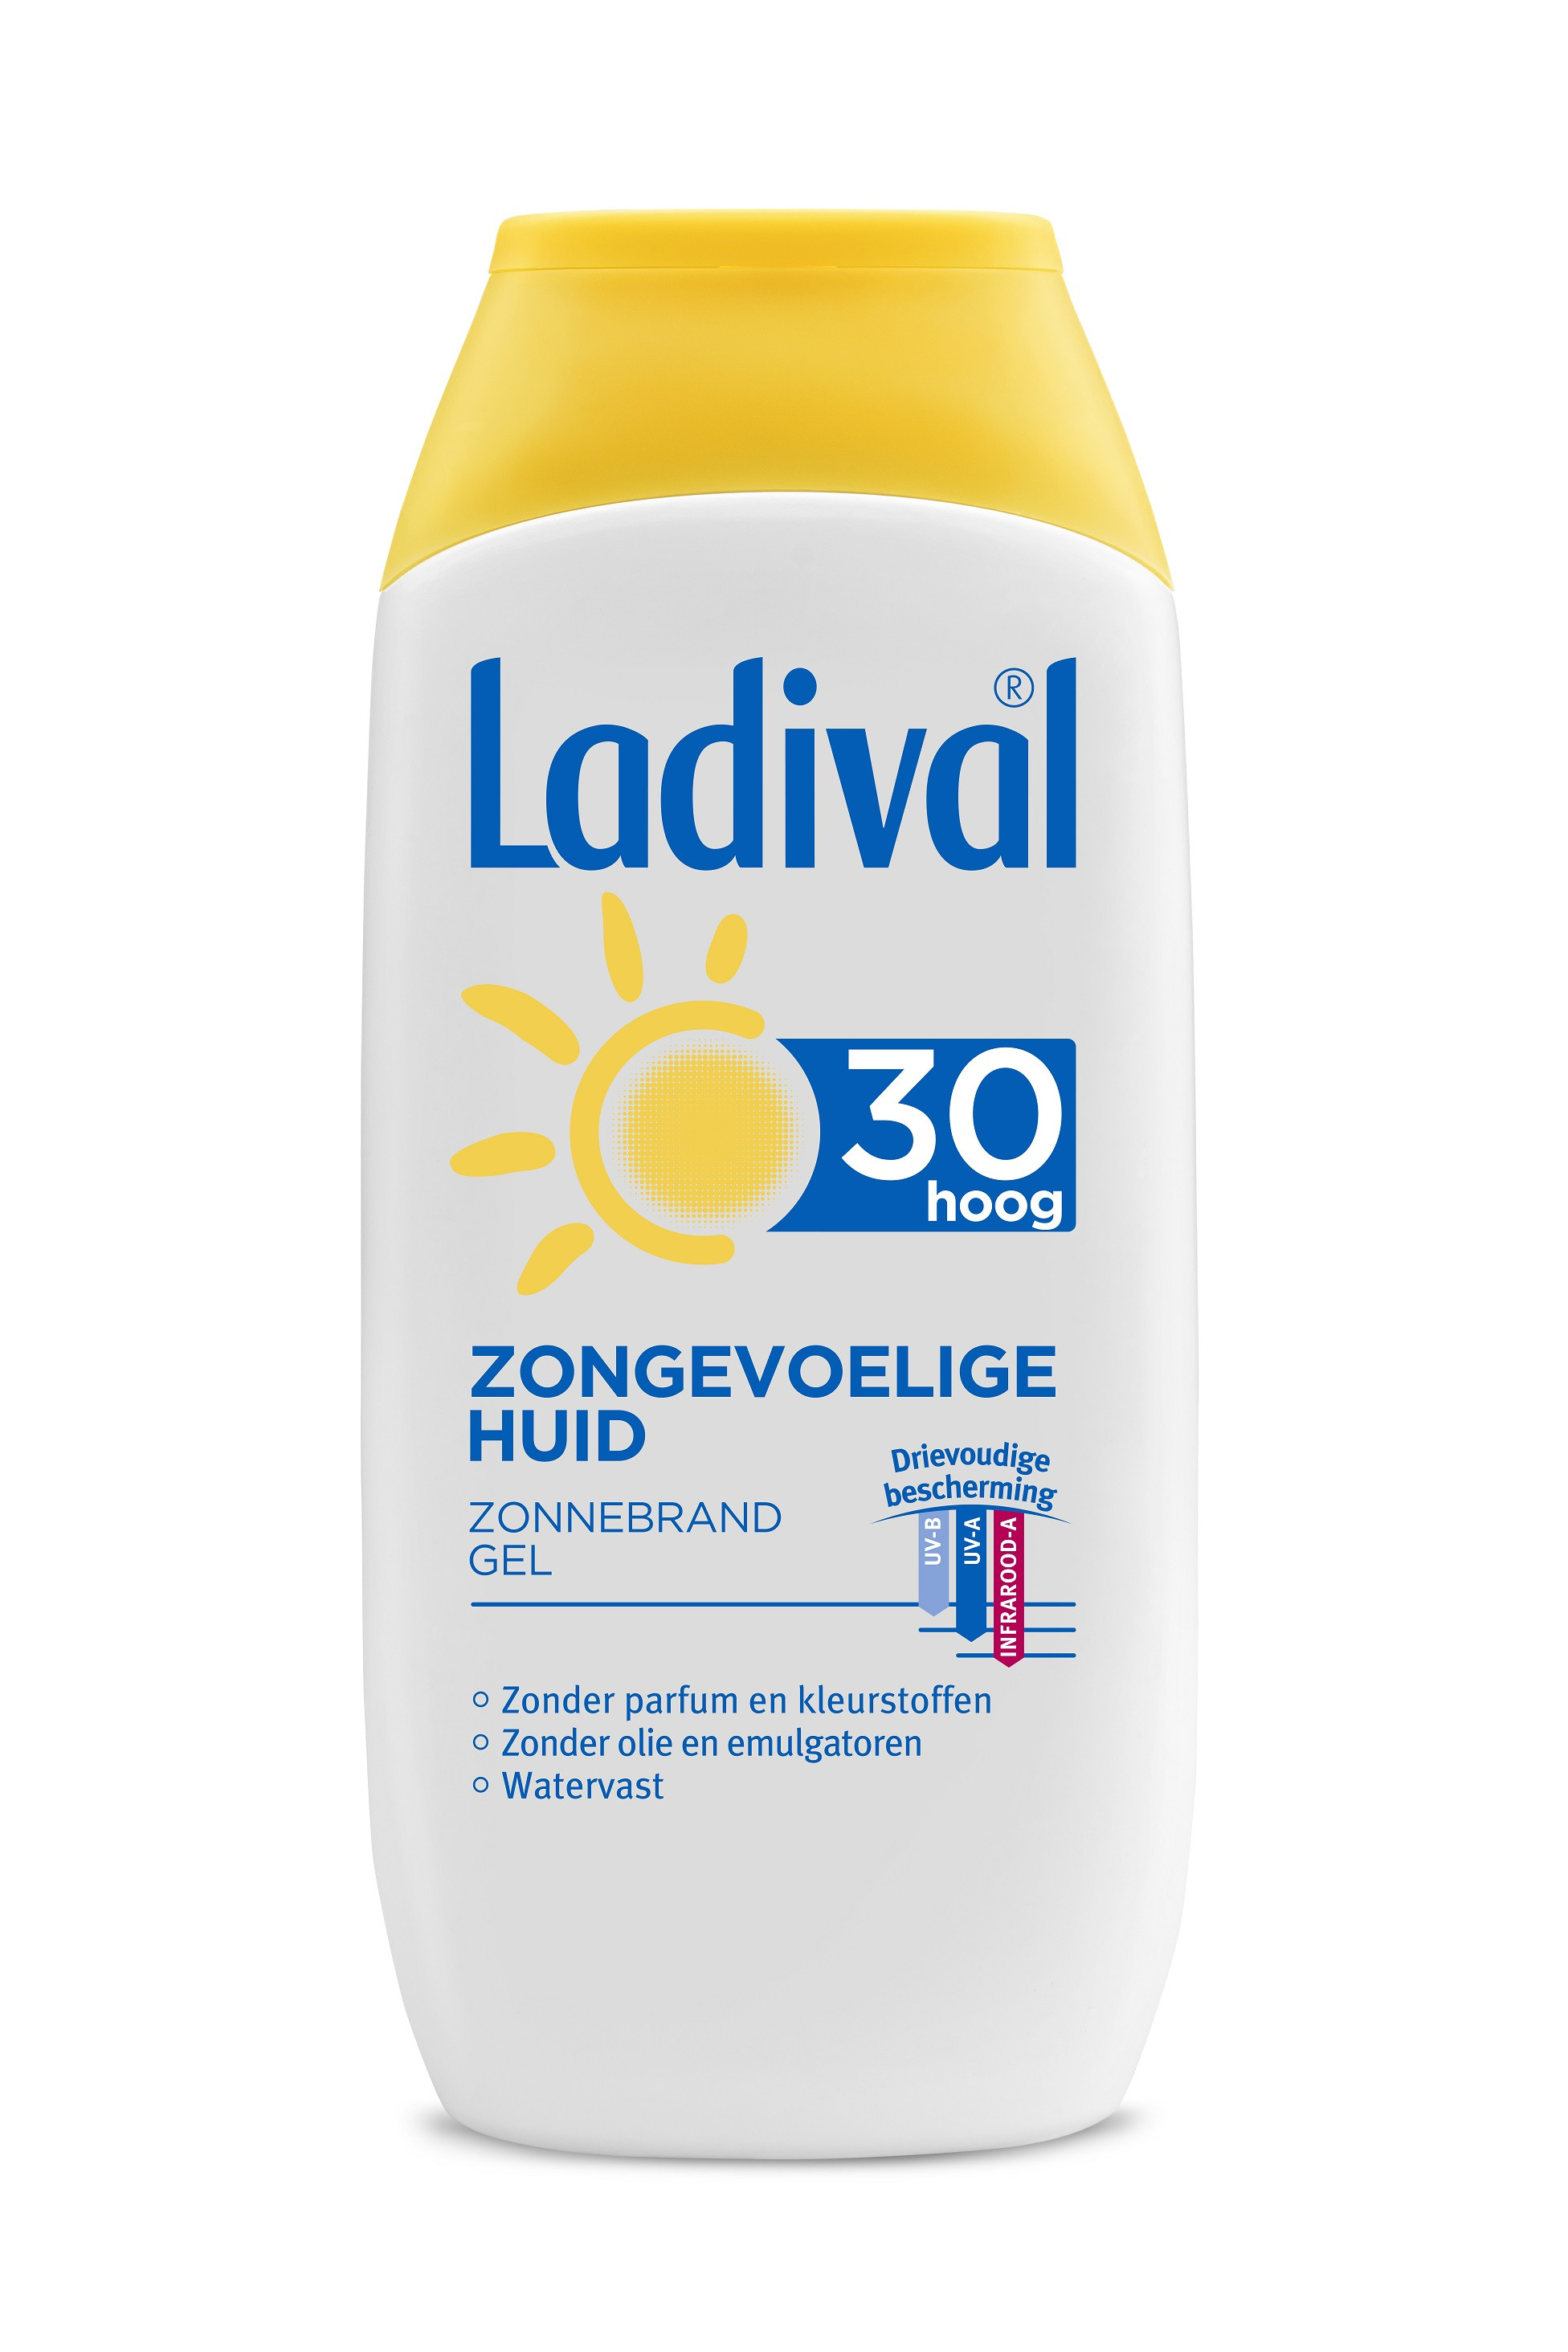 Ladival Zongevoelige Huid gel SPF30 200ml